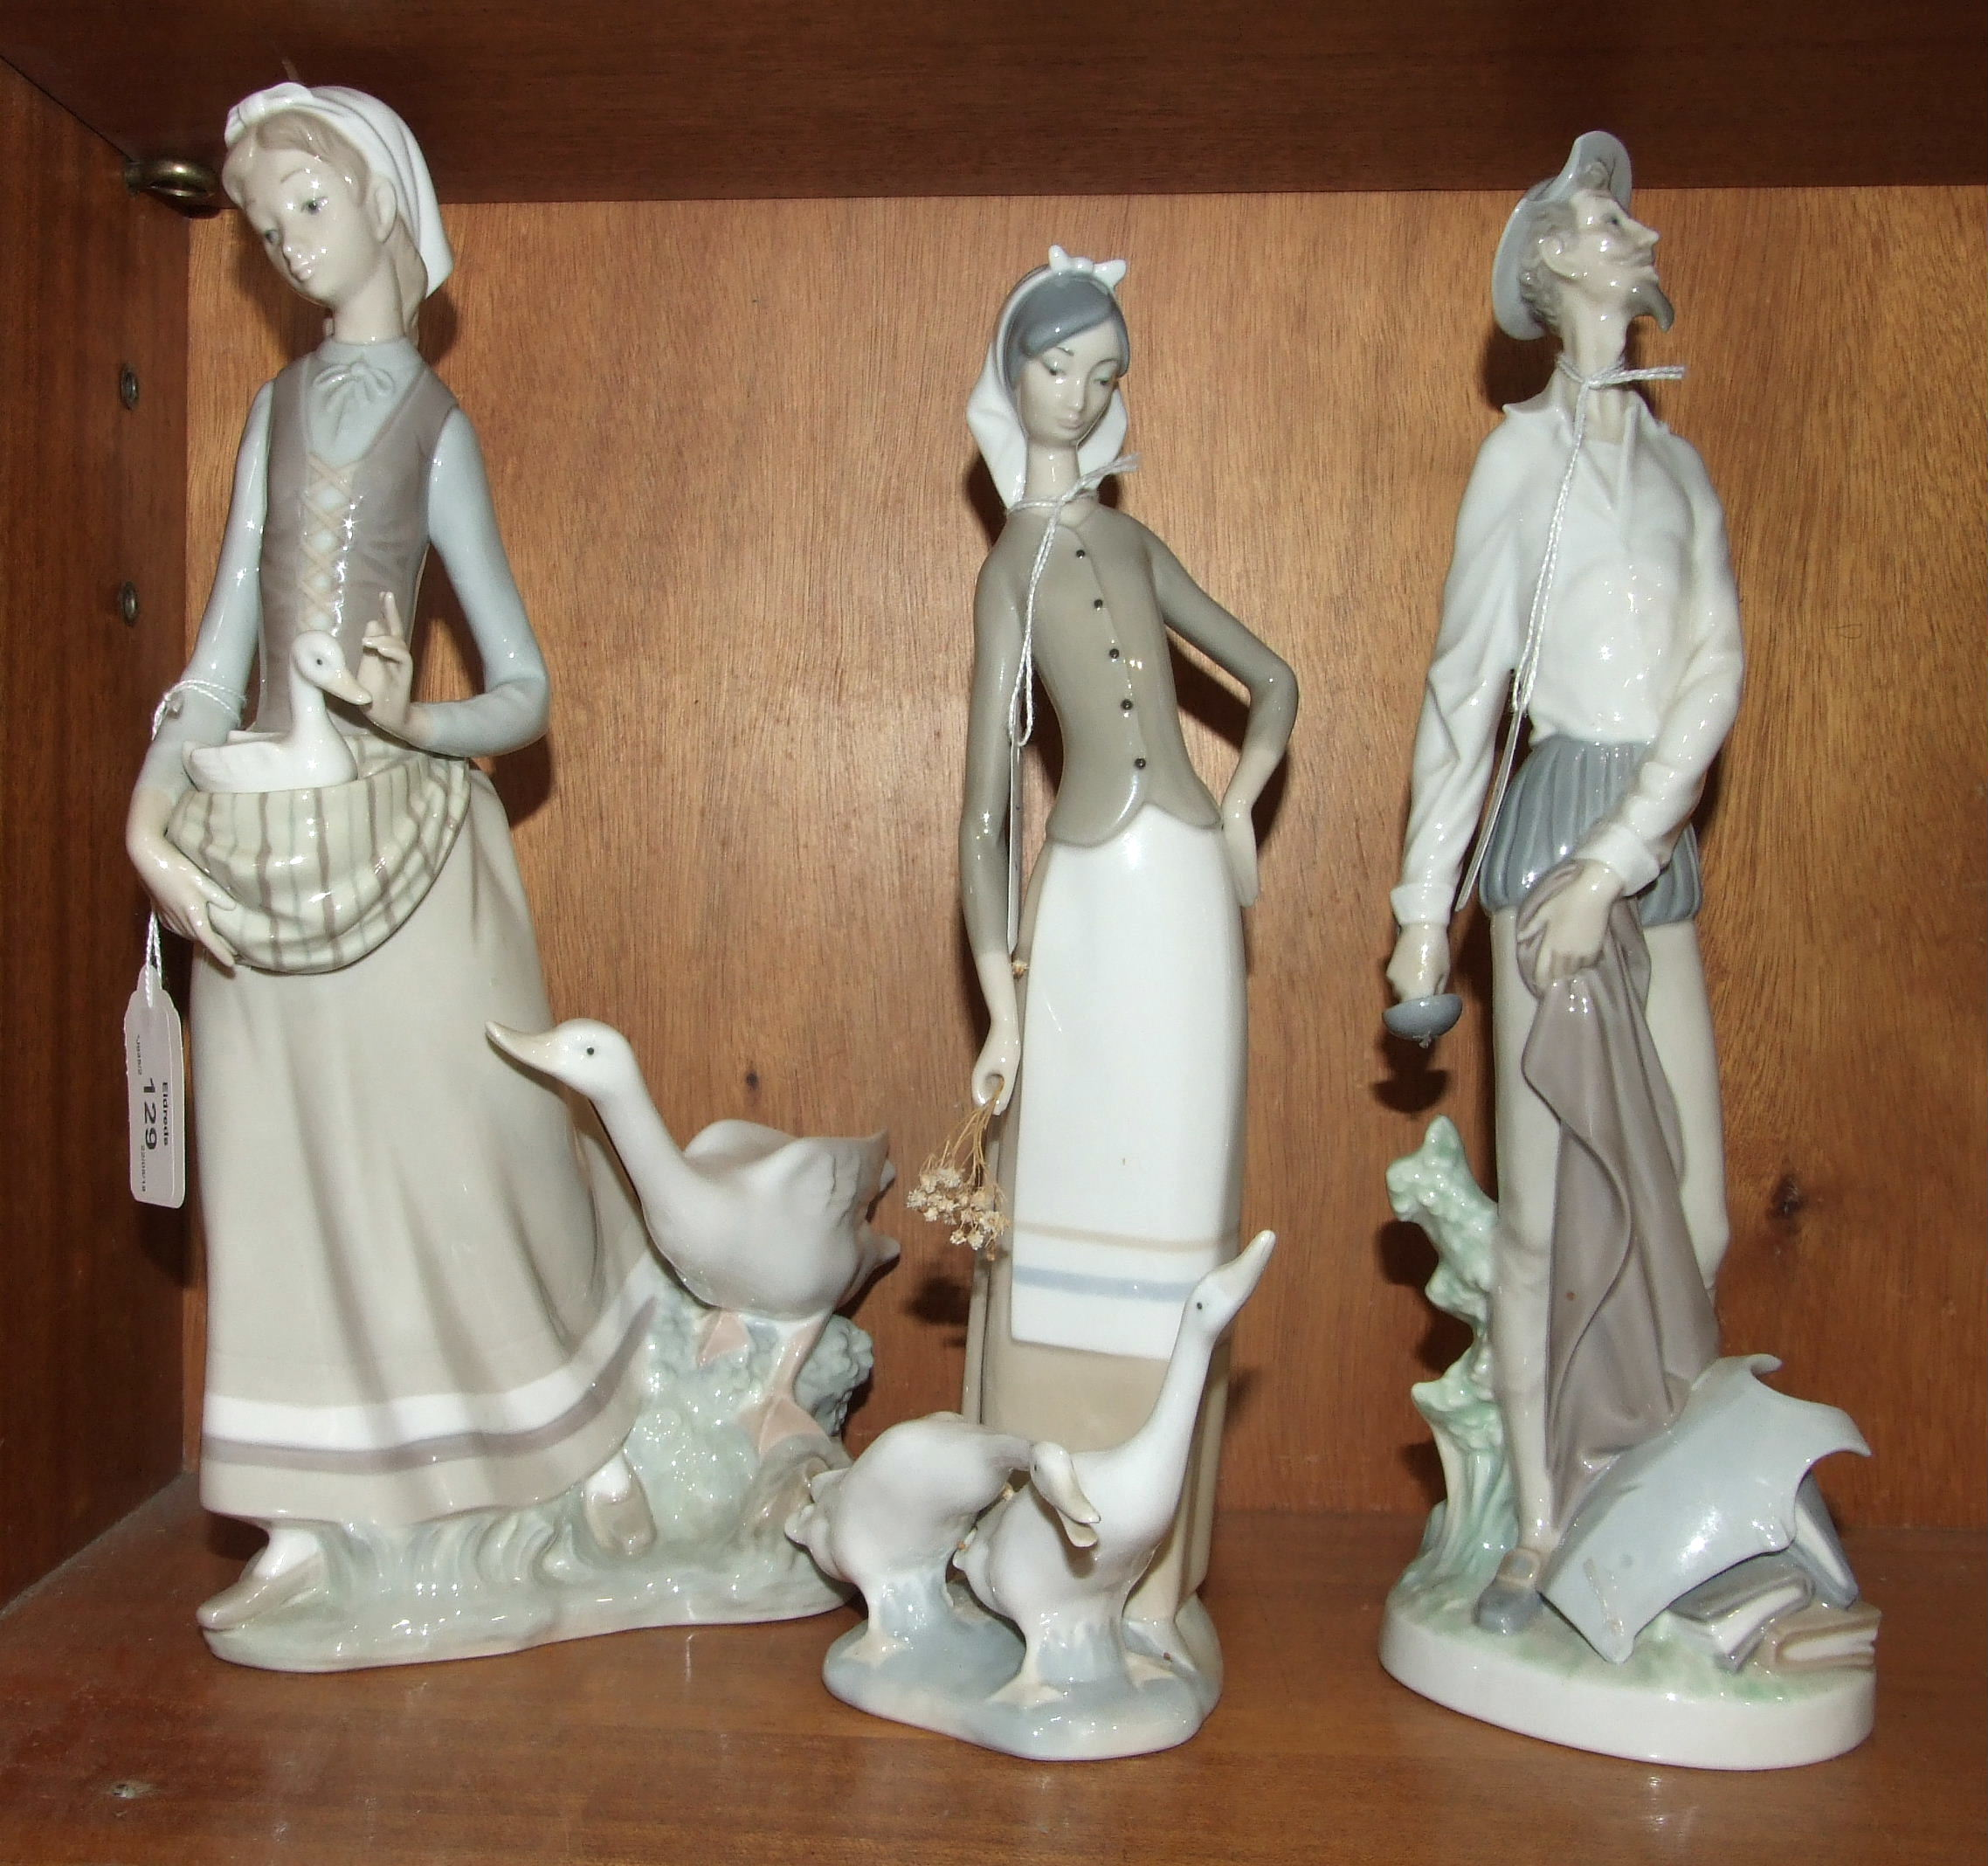 Lot 129 - Three Lladro figurines, 'Young girl carrying a duckling within her apron, with larger duck beside